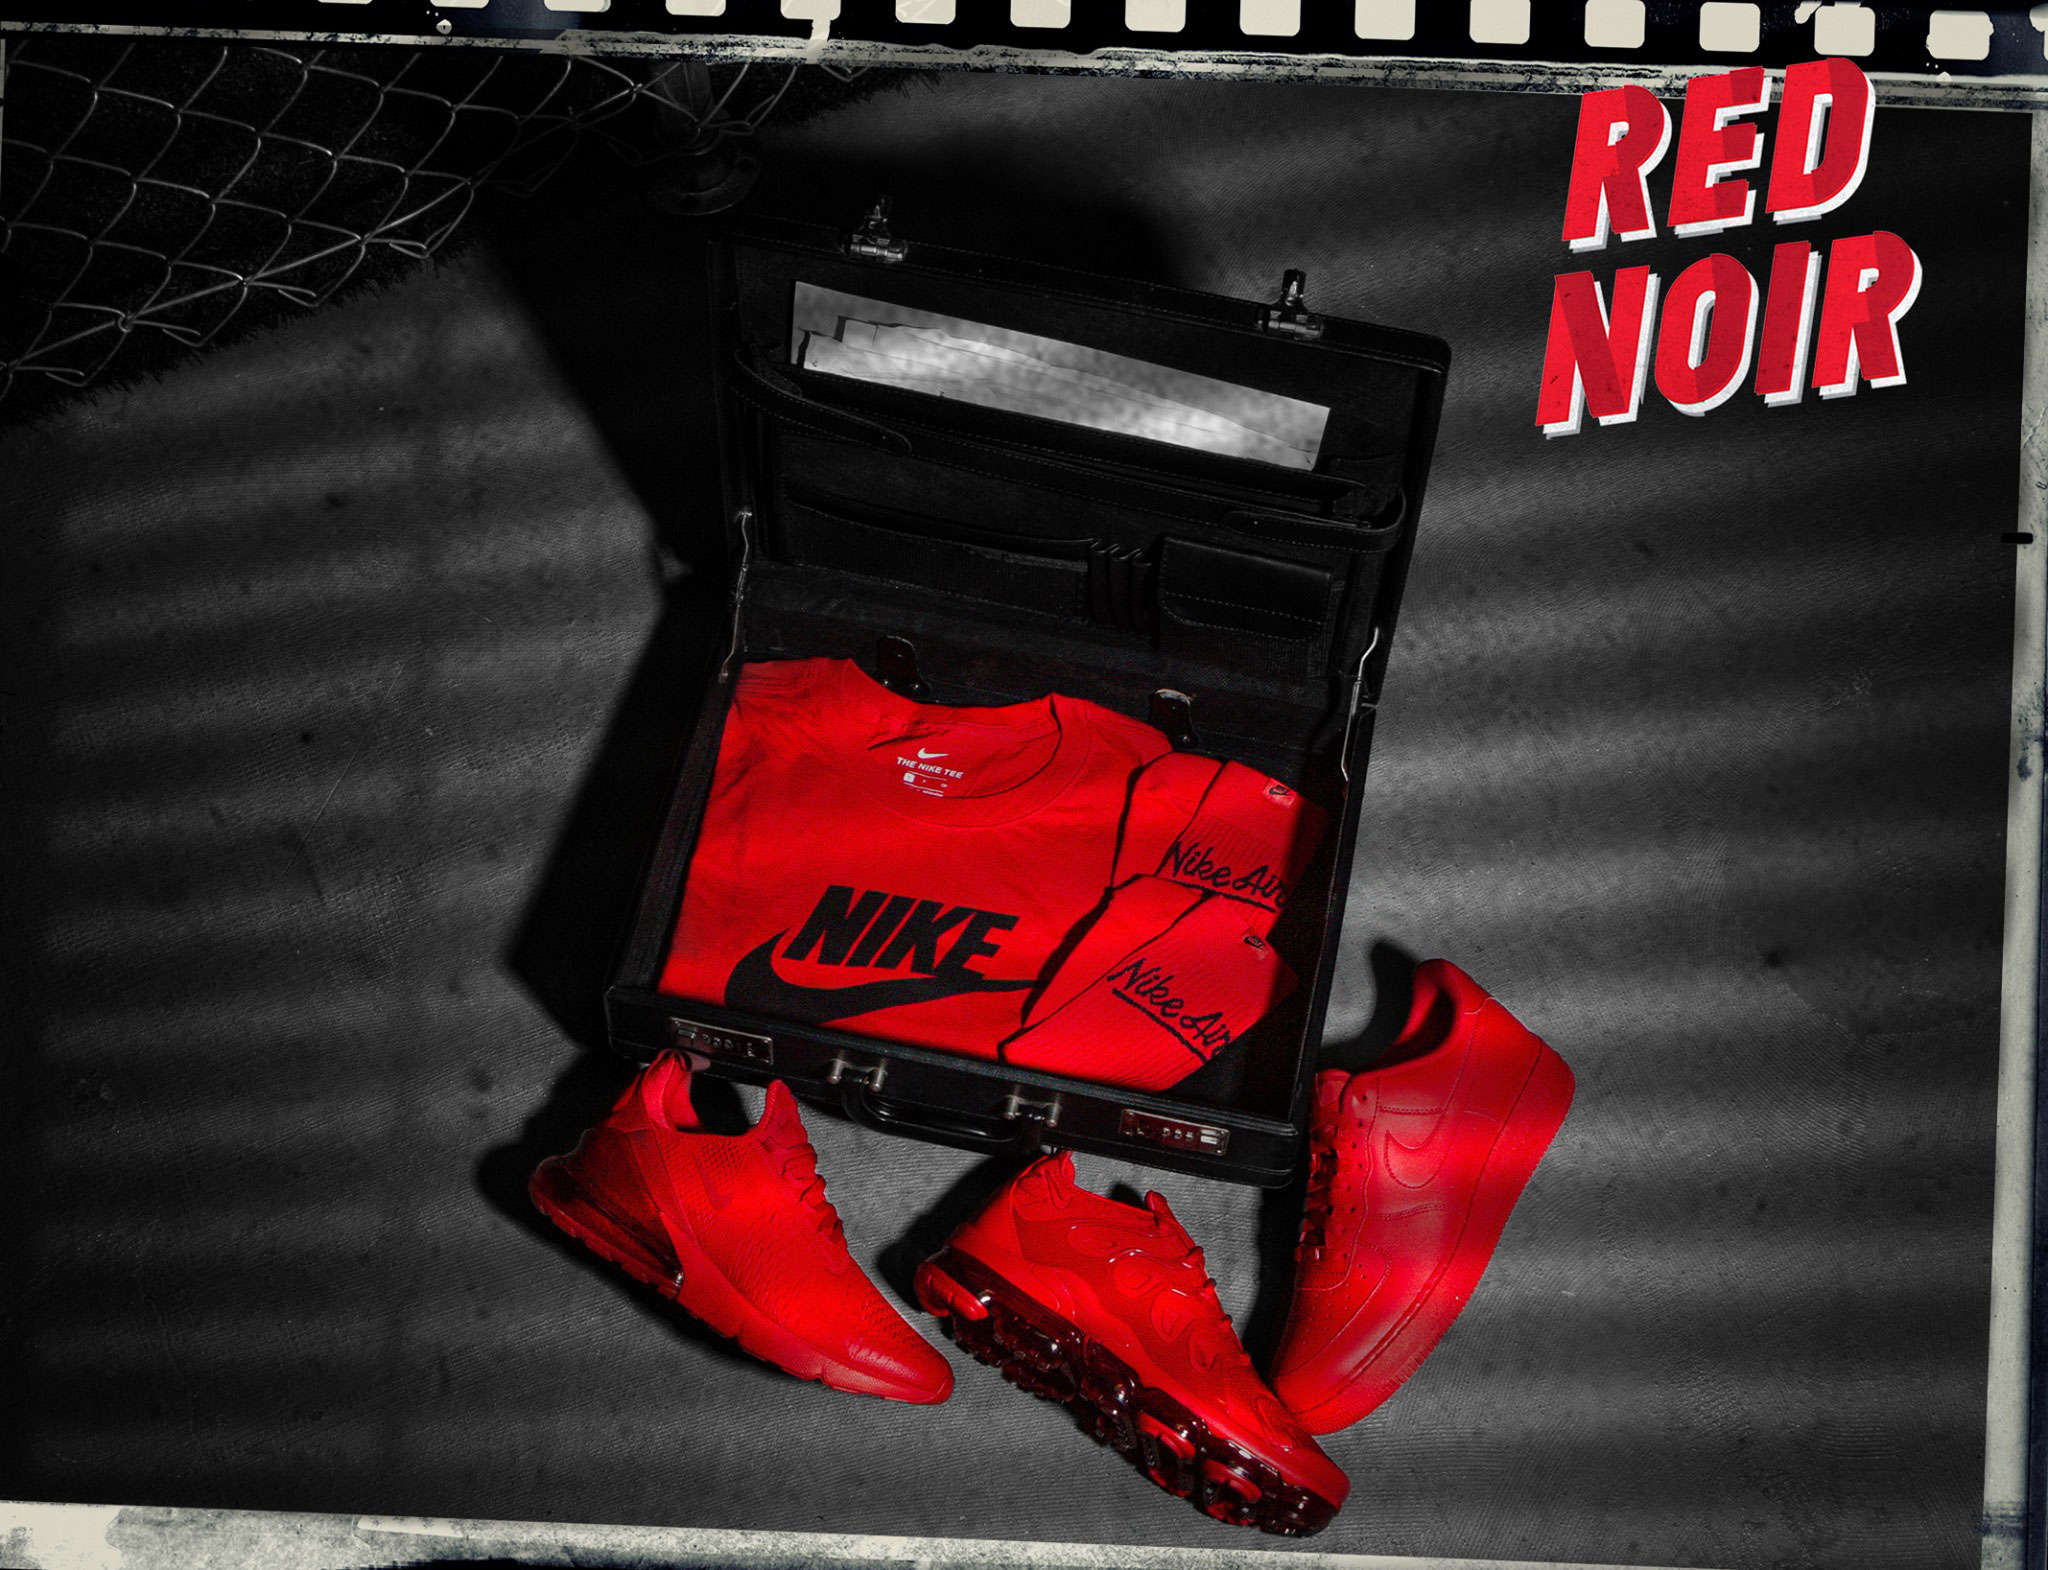 nike-air-red-noir-shoes-clothing